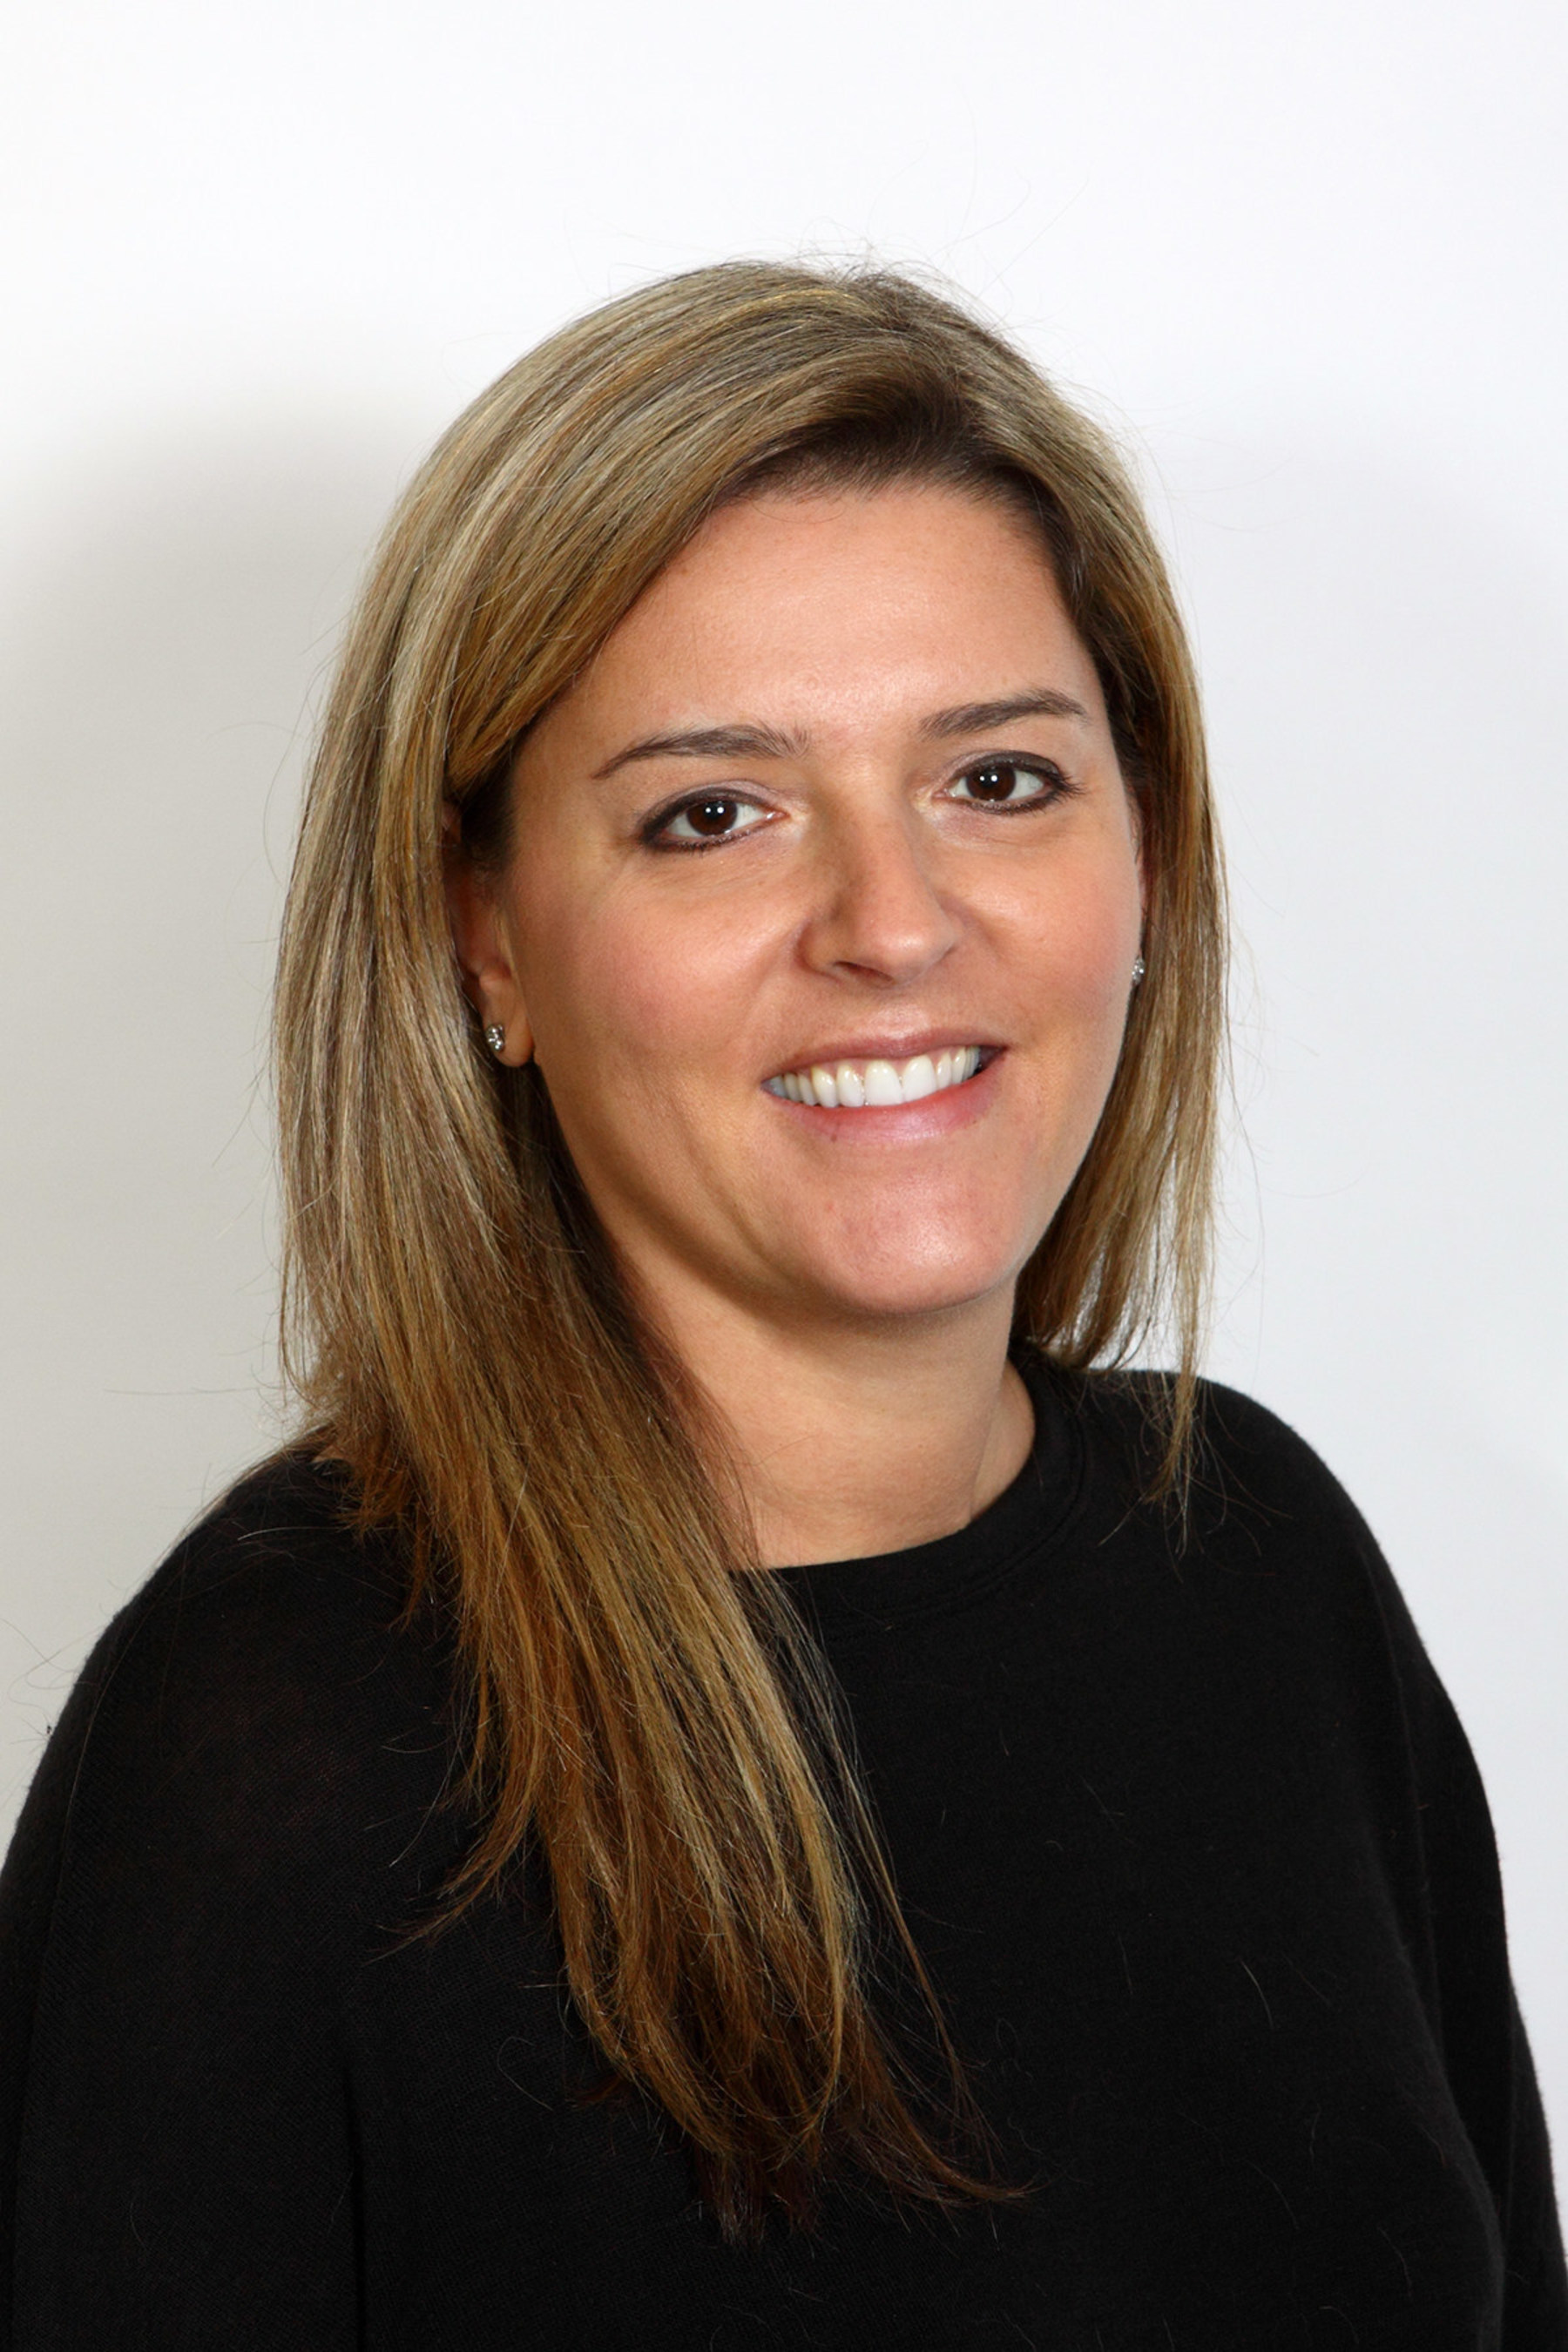 Photo of Lisa Mayr, Chief Financial Officer